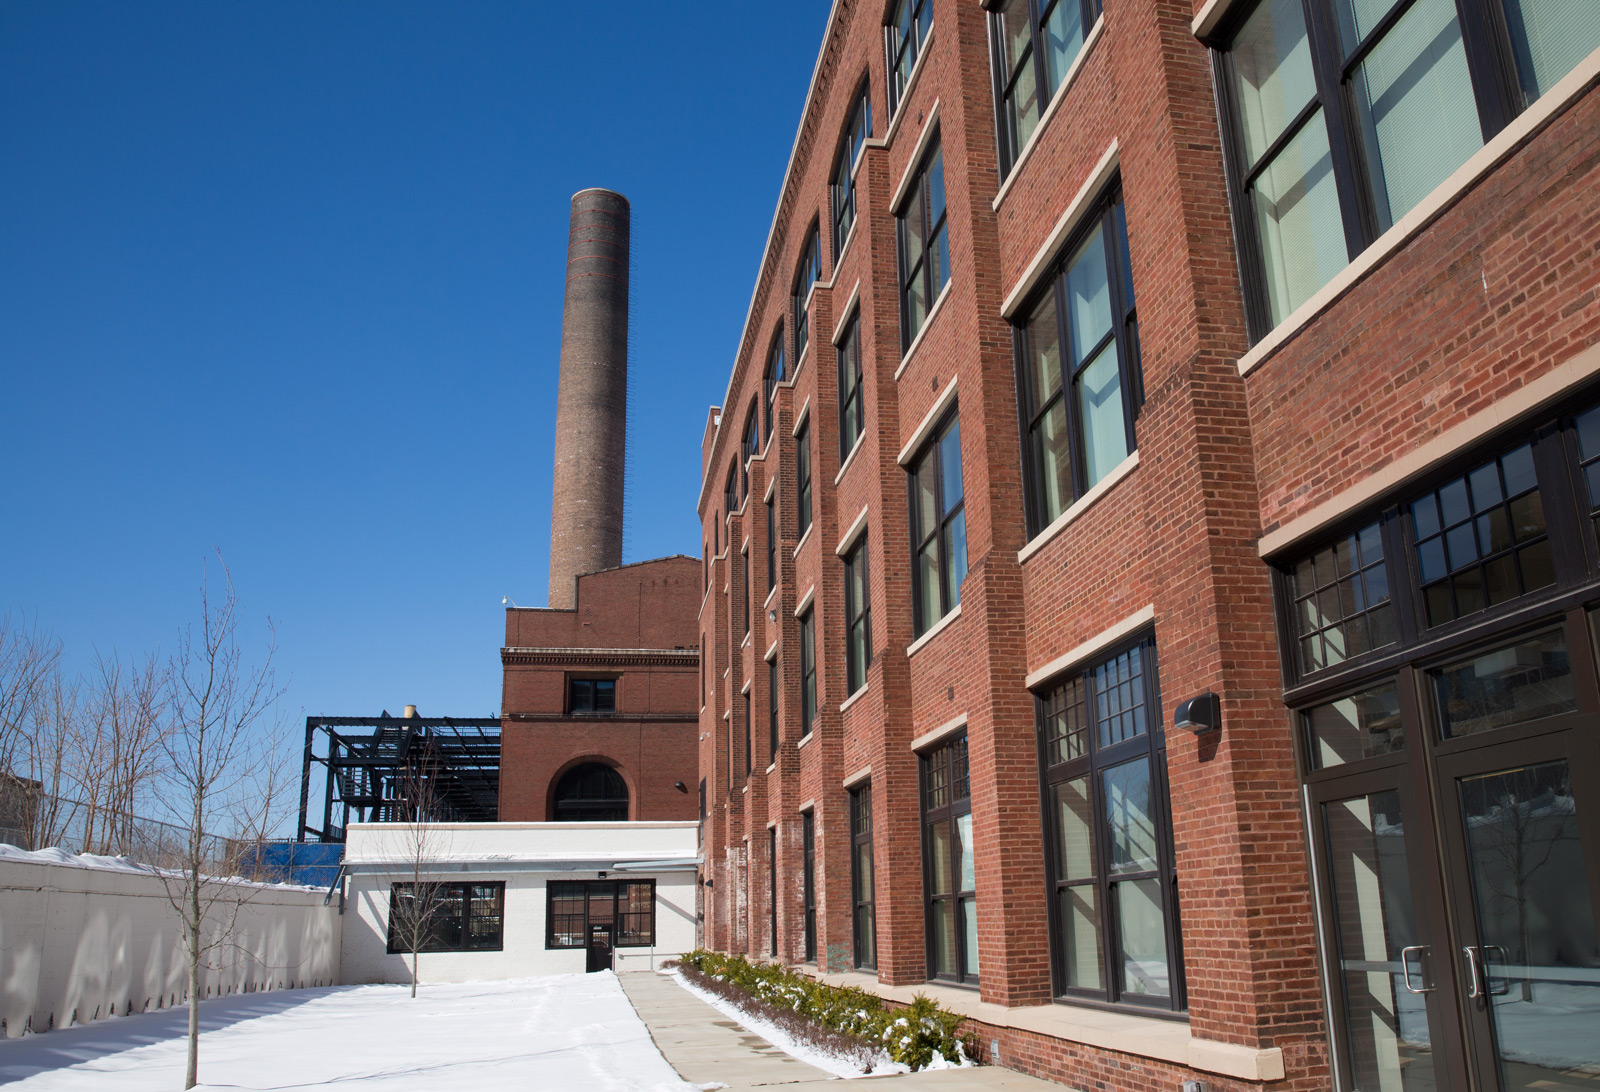 Historic sears complex becomes lofts on arthington for Affordable home additions